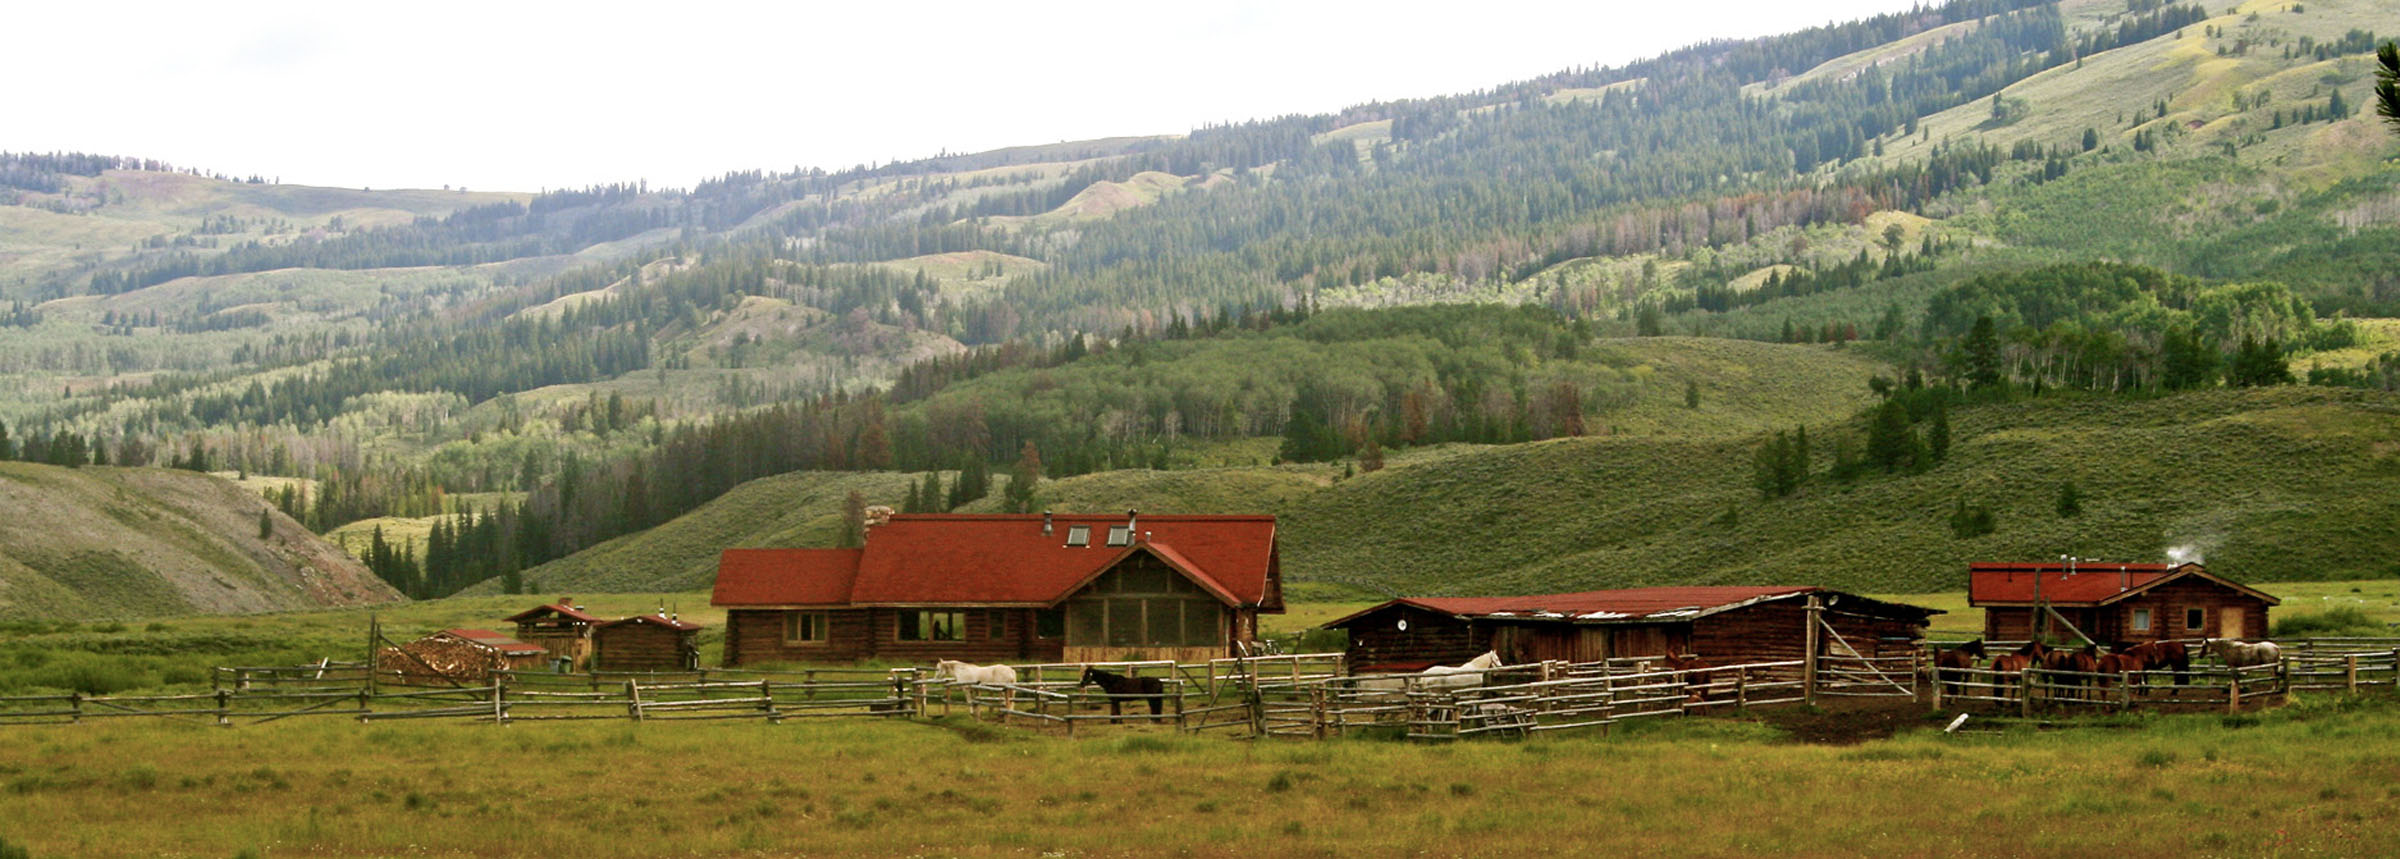 Jackson Wyoming Ranch In Gros Ventre Wilderness Goes To